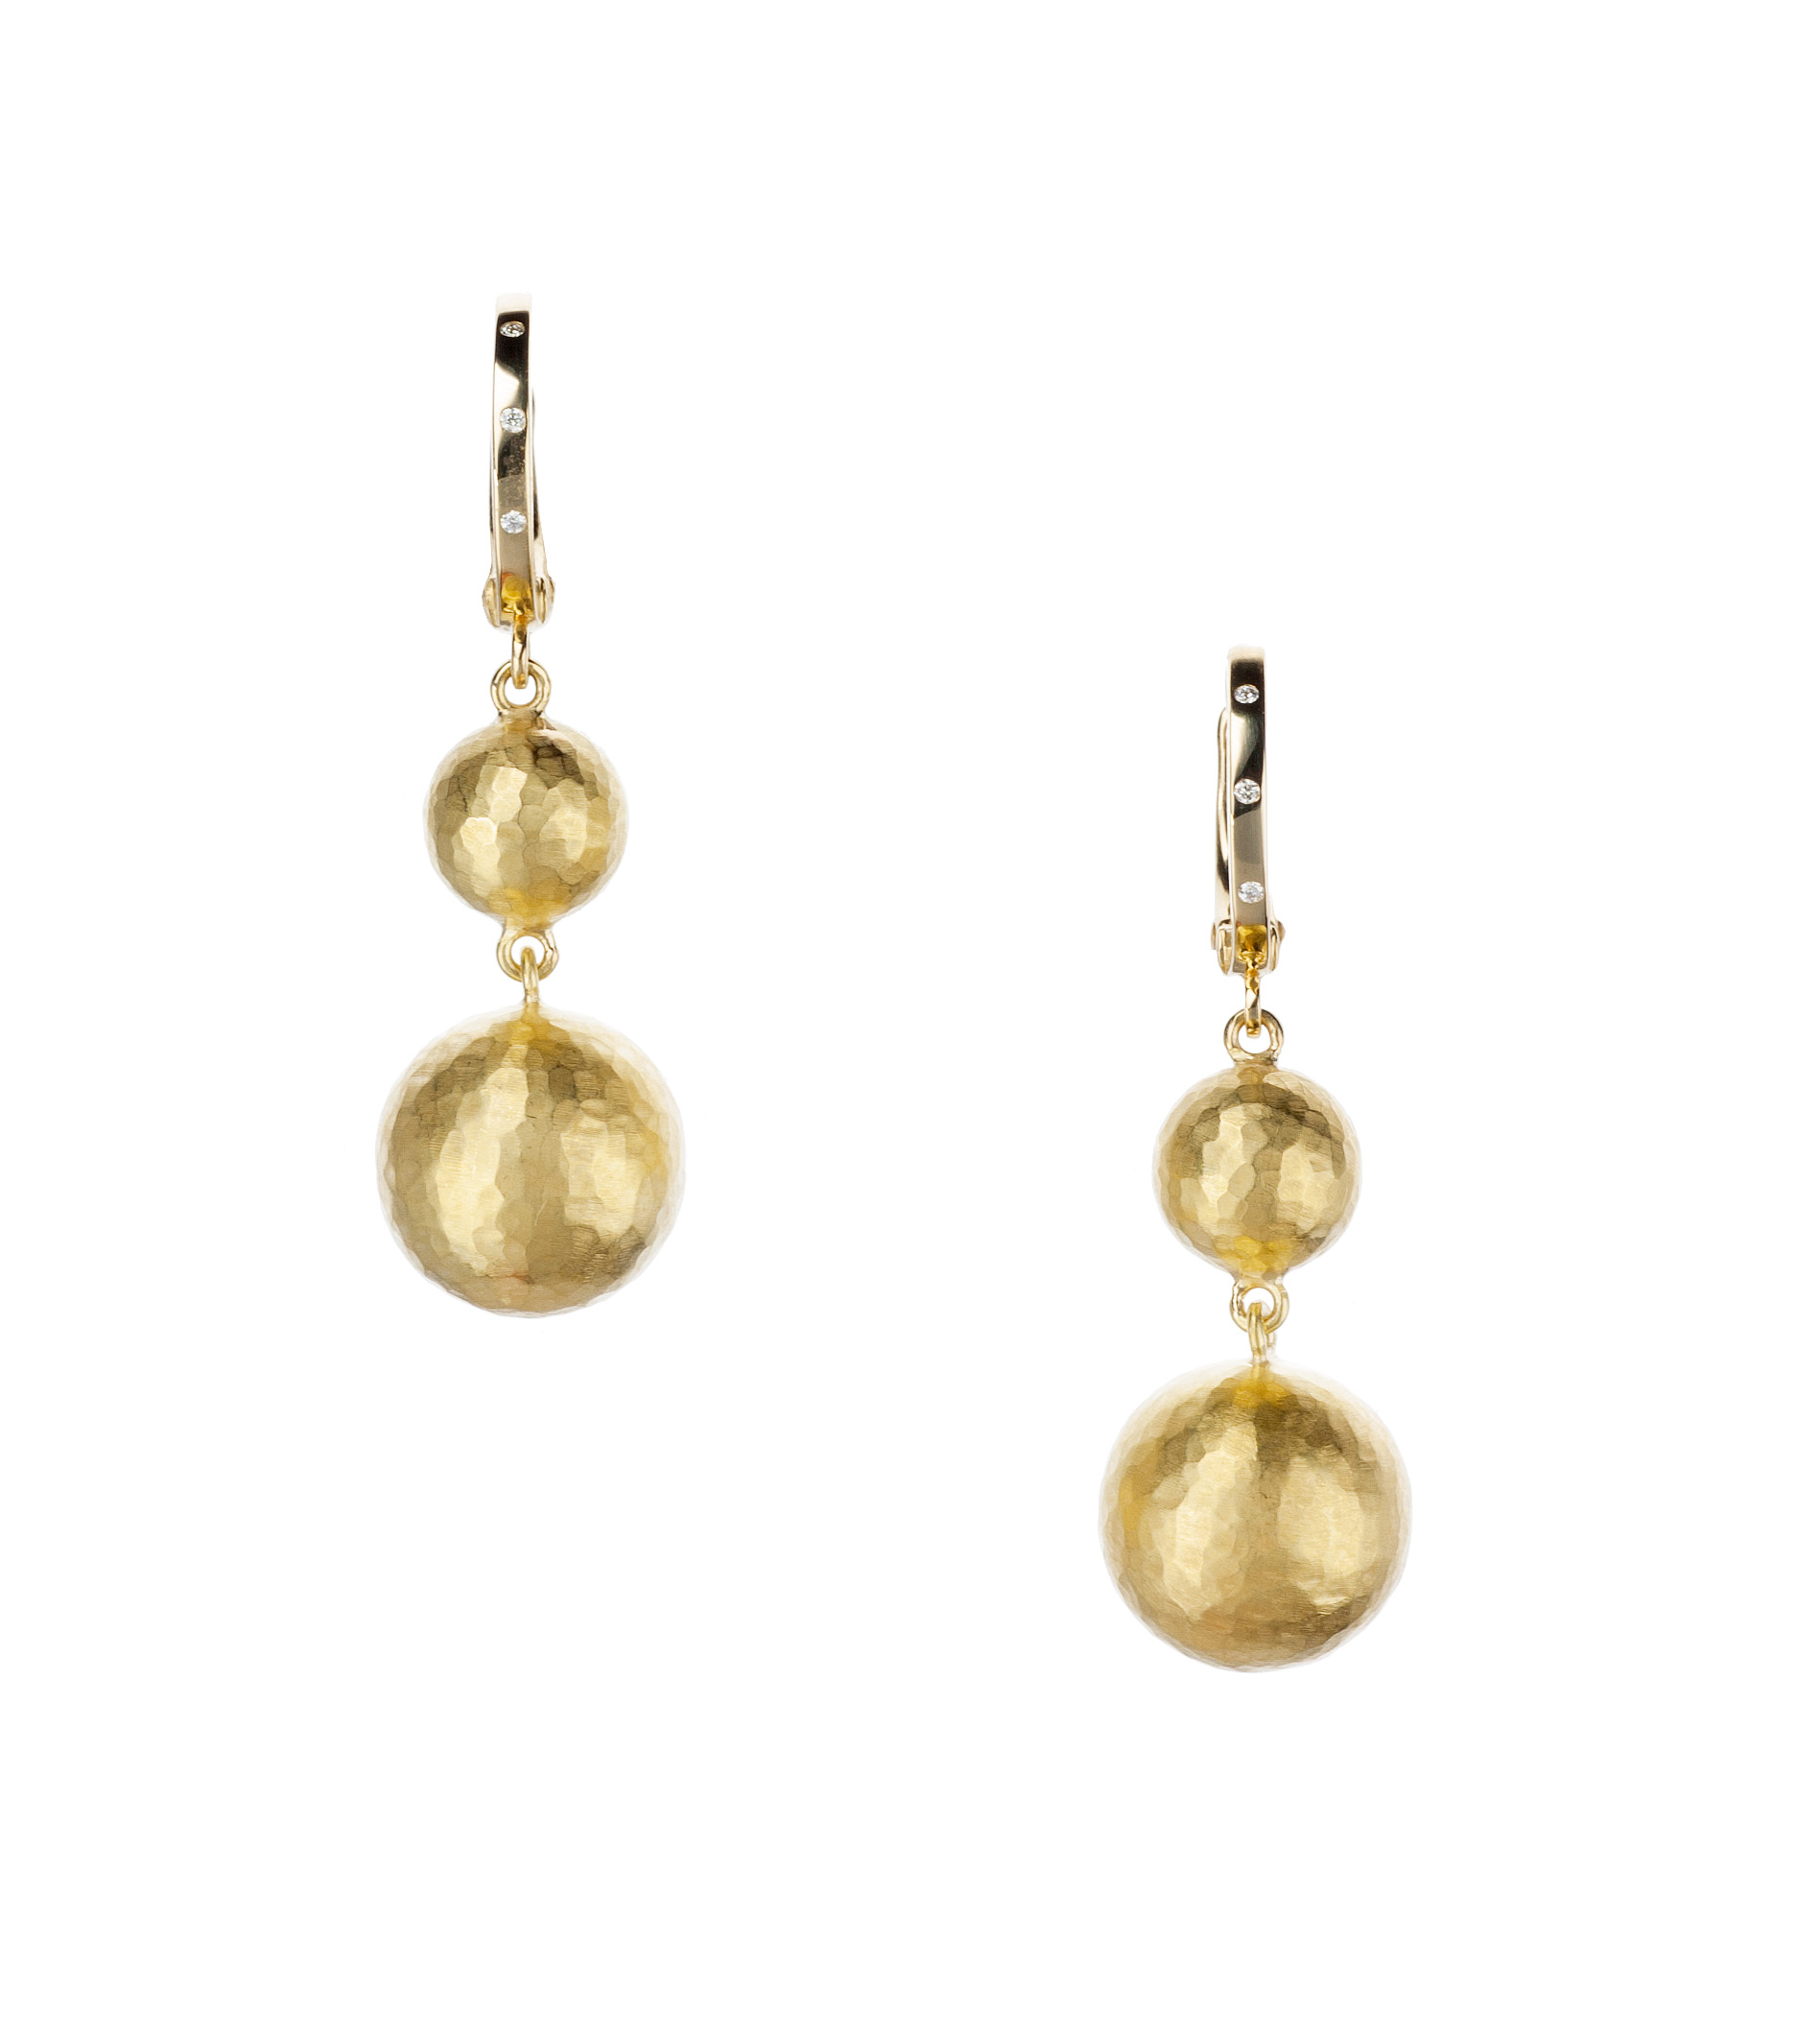 Hammered 18-karat yellow gold and diamond drop earrings